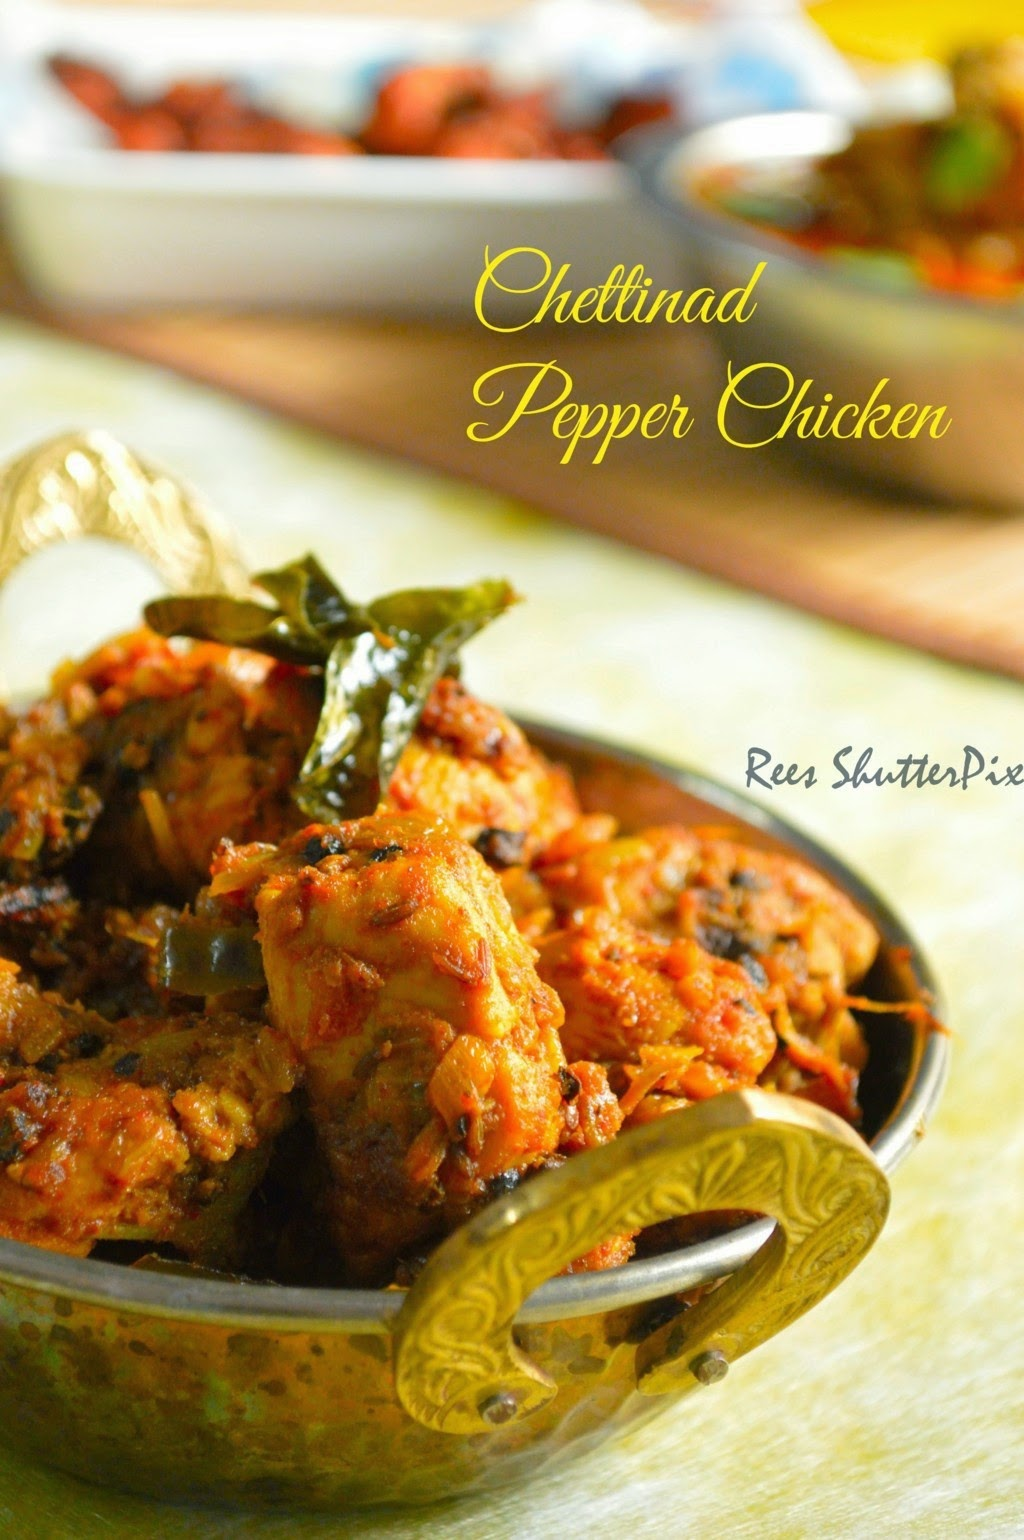 Delectable flavours chettinad recipes chettinad pepper chicken forumfinder